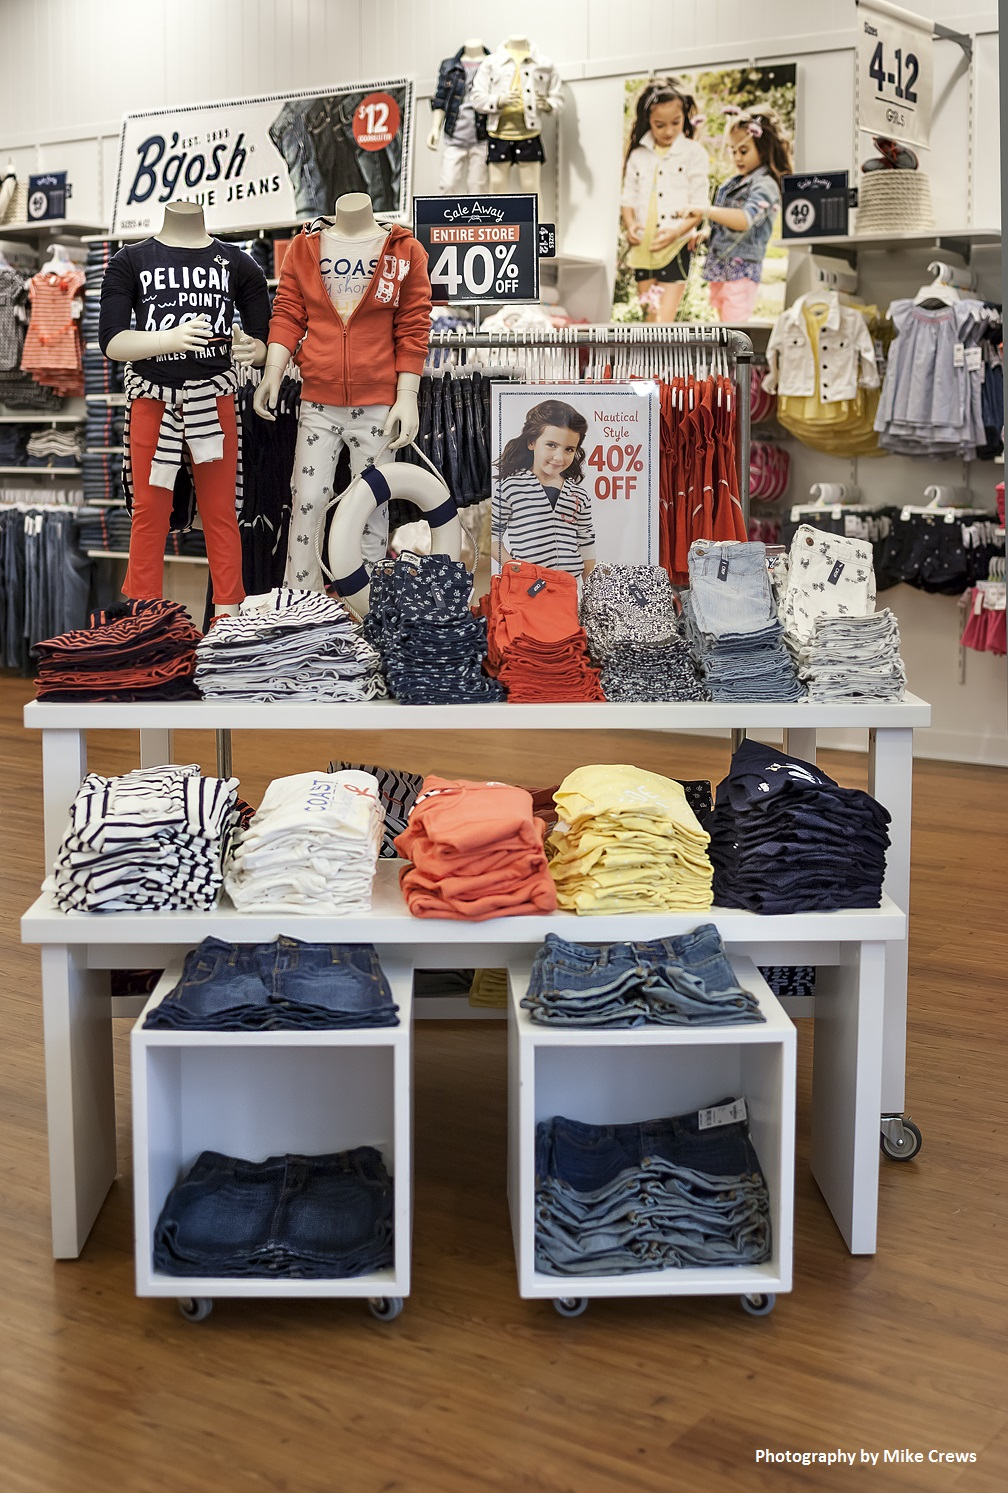 OSHKOSH B'GOSH - Pigeon Forge, TN